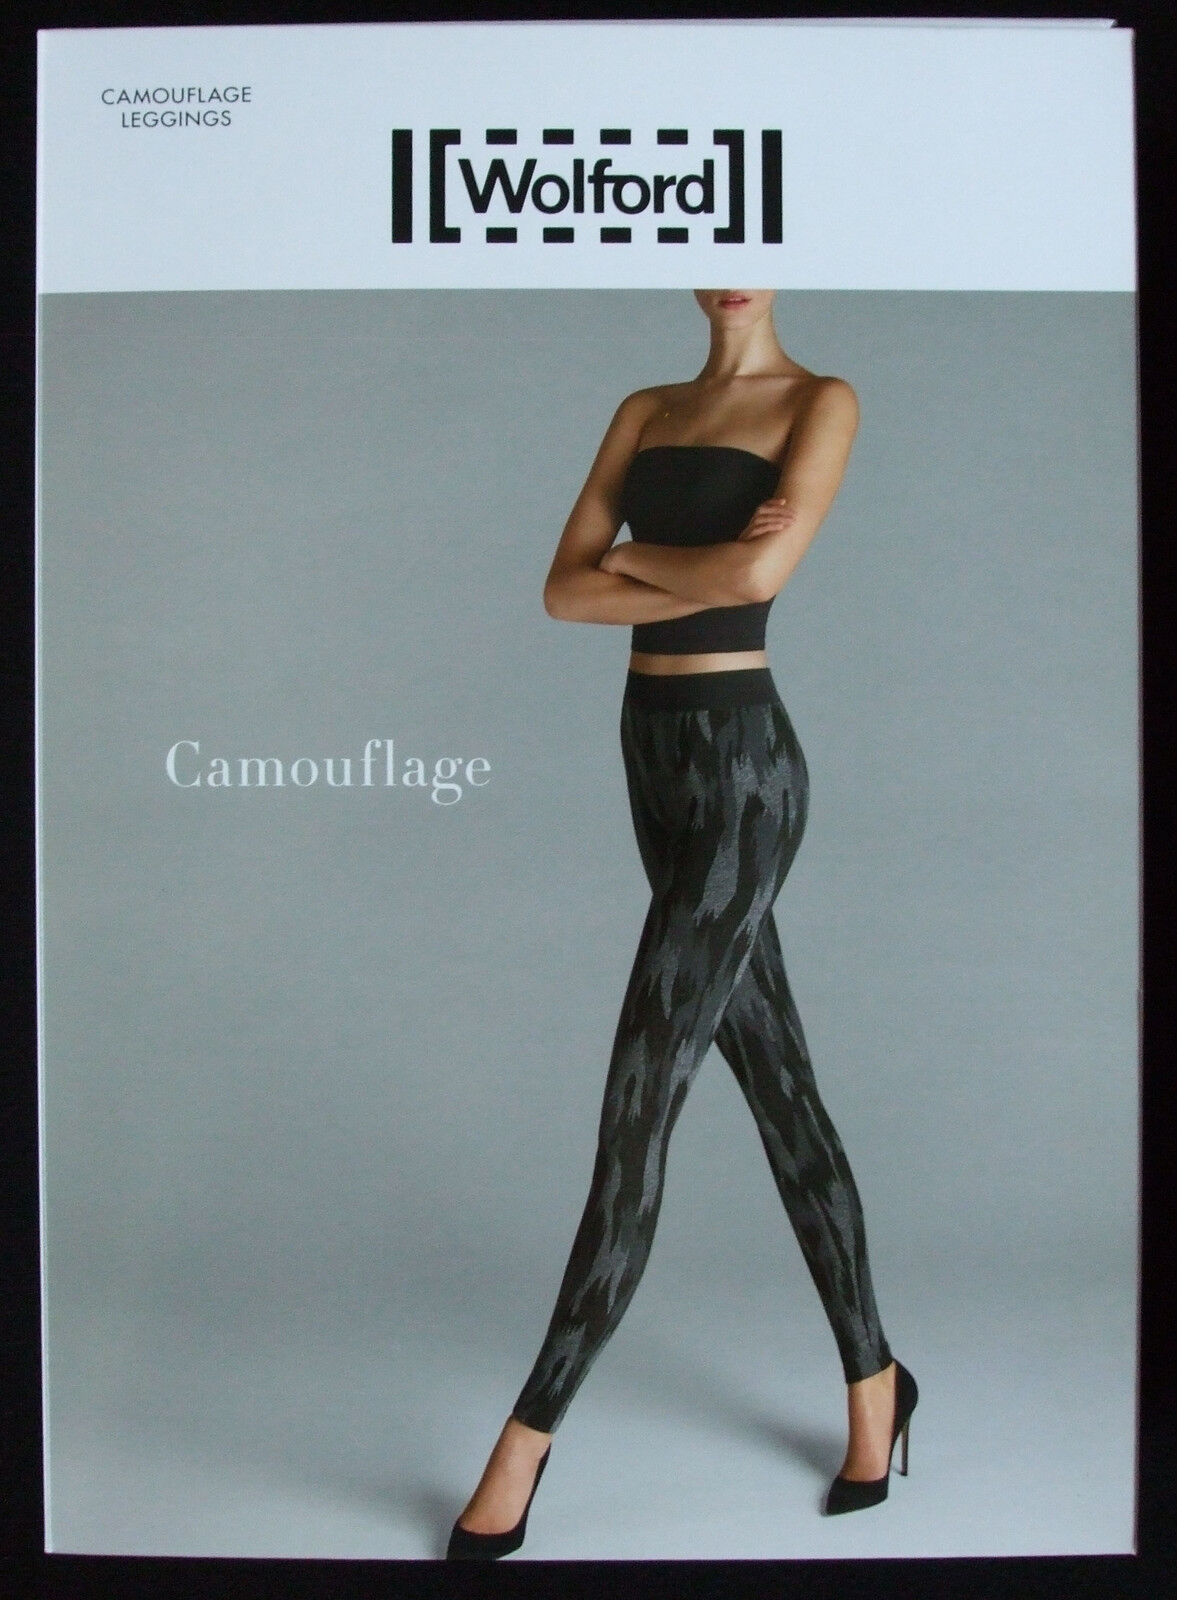 WOLFORD CAMOUFLAGE LEGGINGS SIZE SMALL USA 6-8, New in box